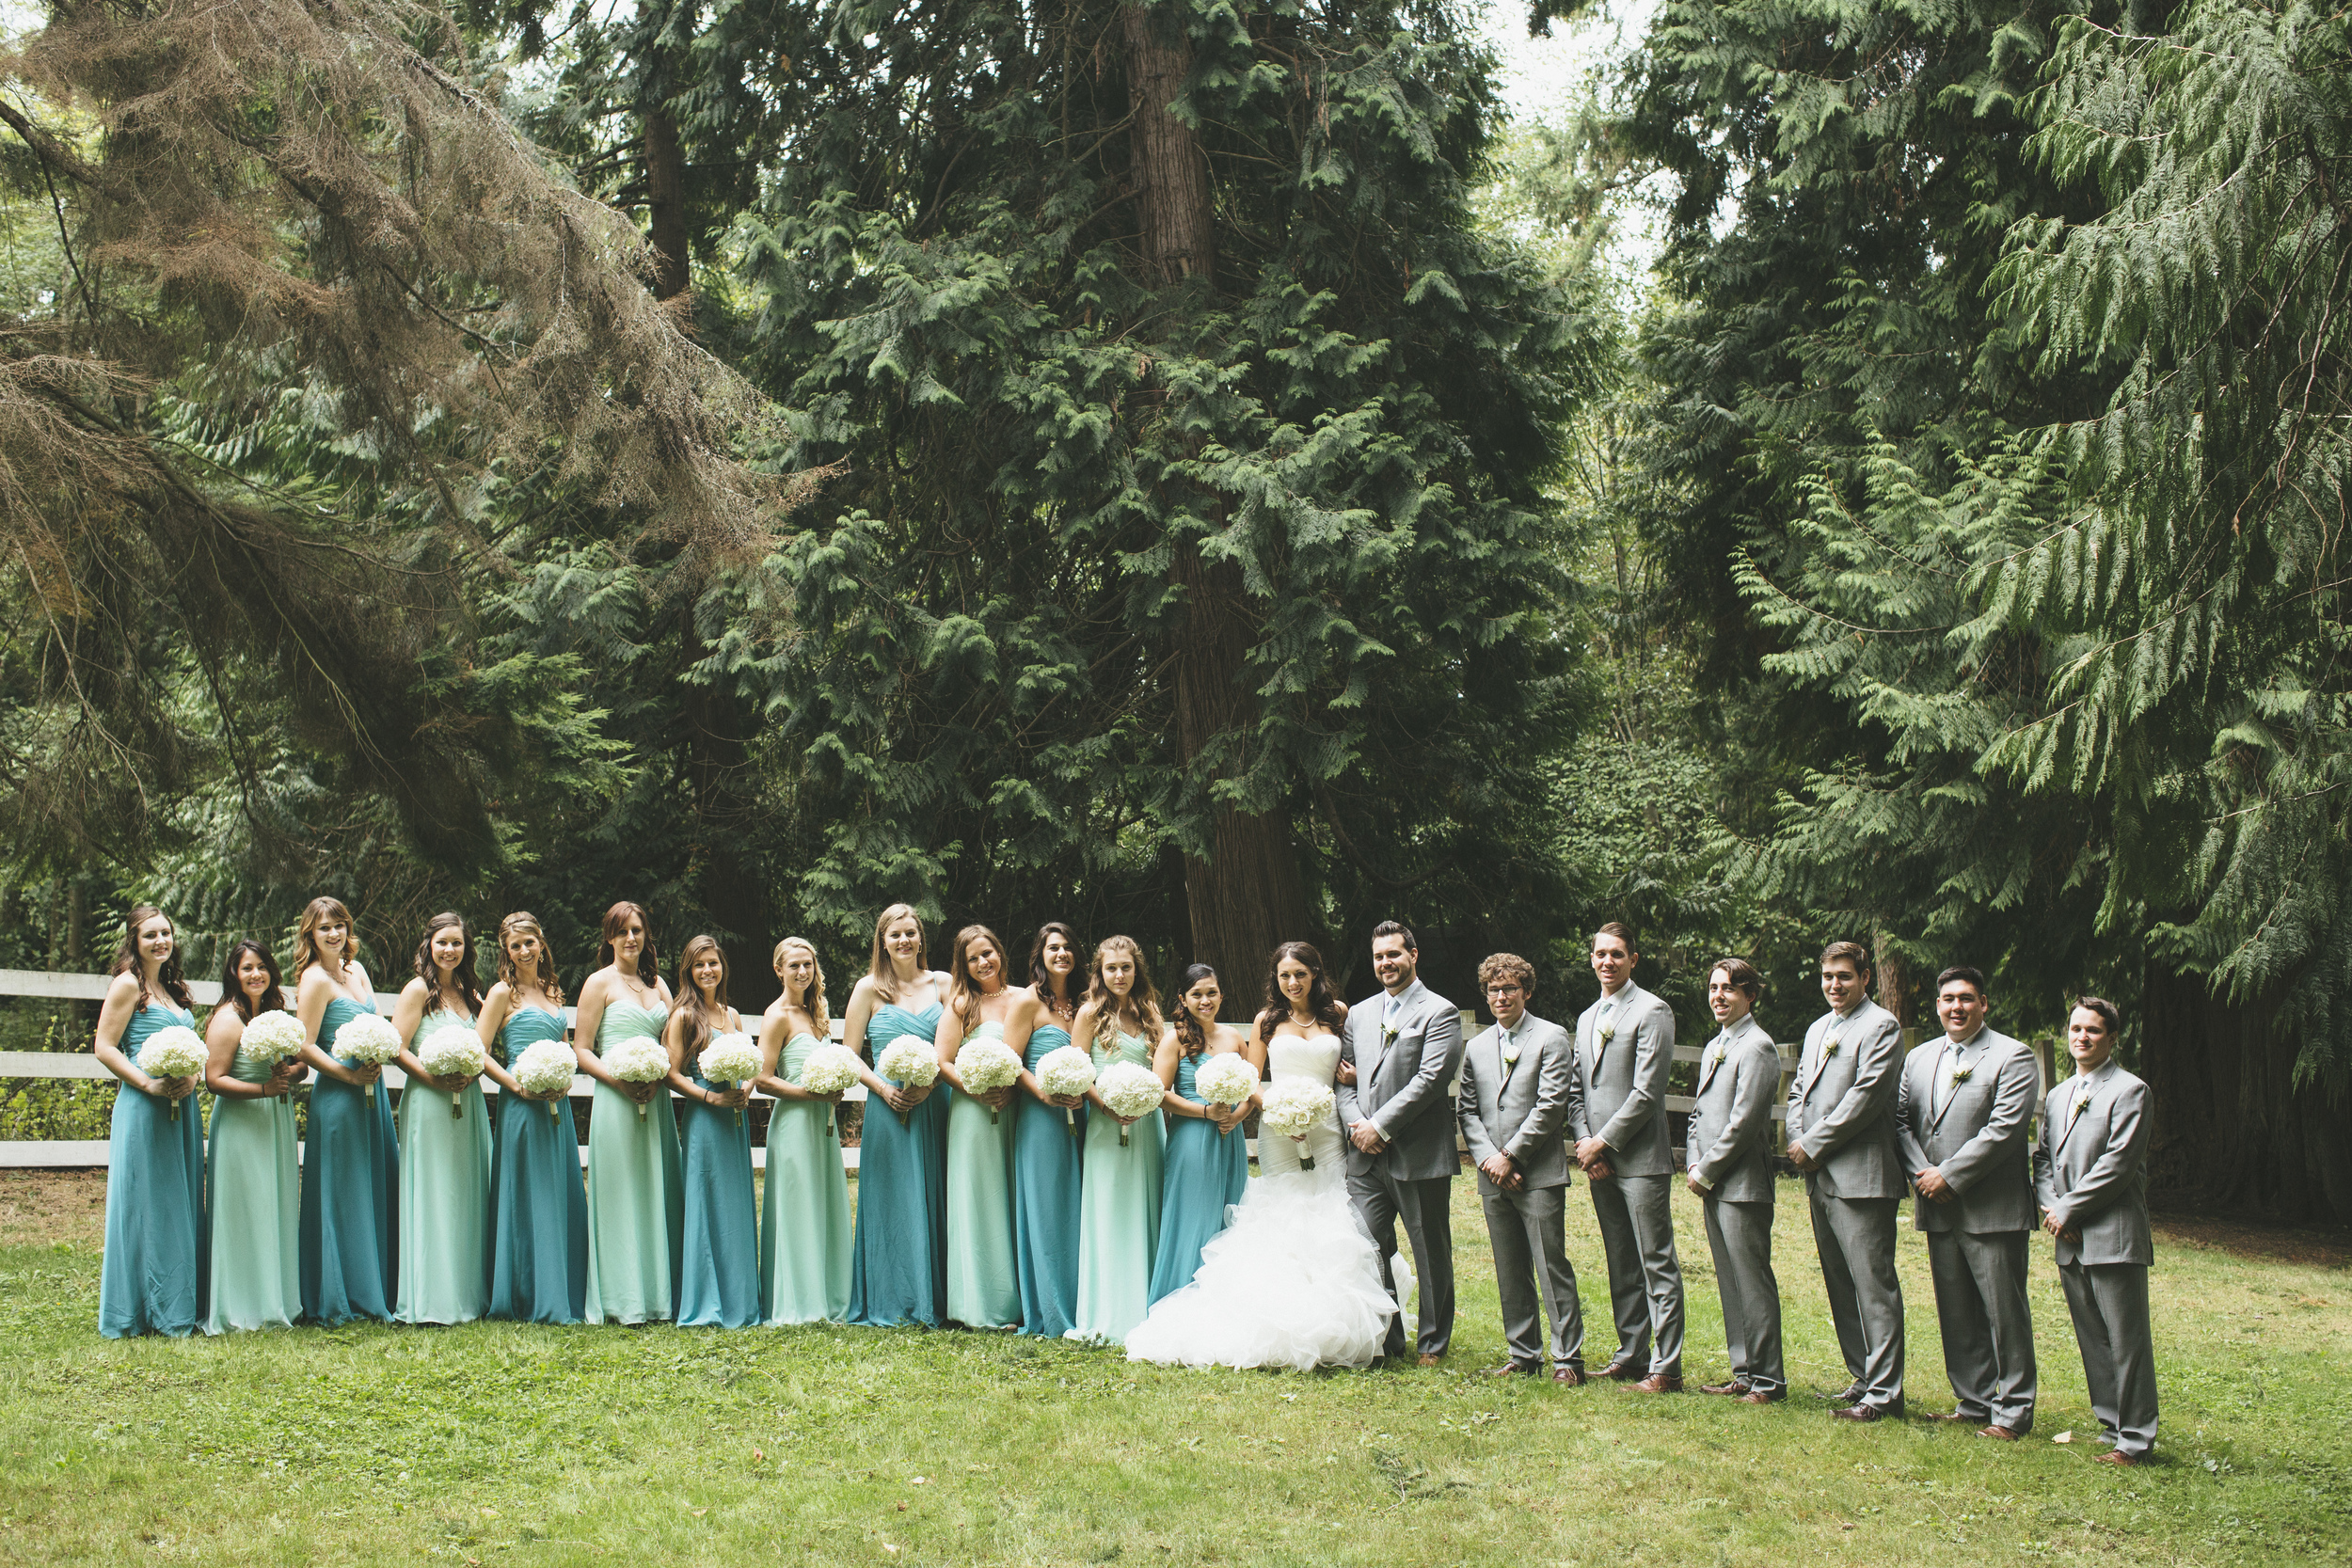 Teal and Gray Wedding Party Attire